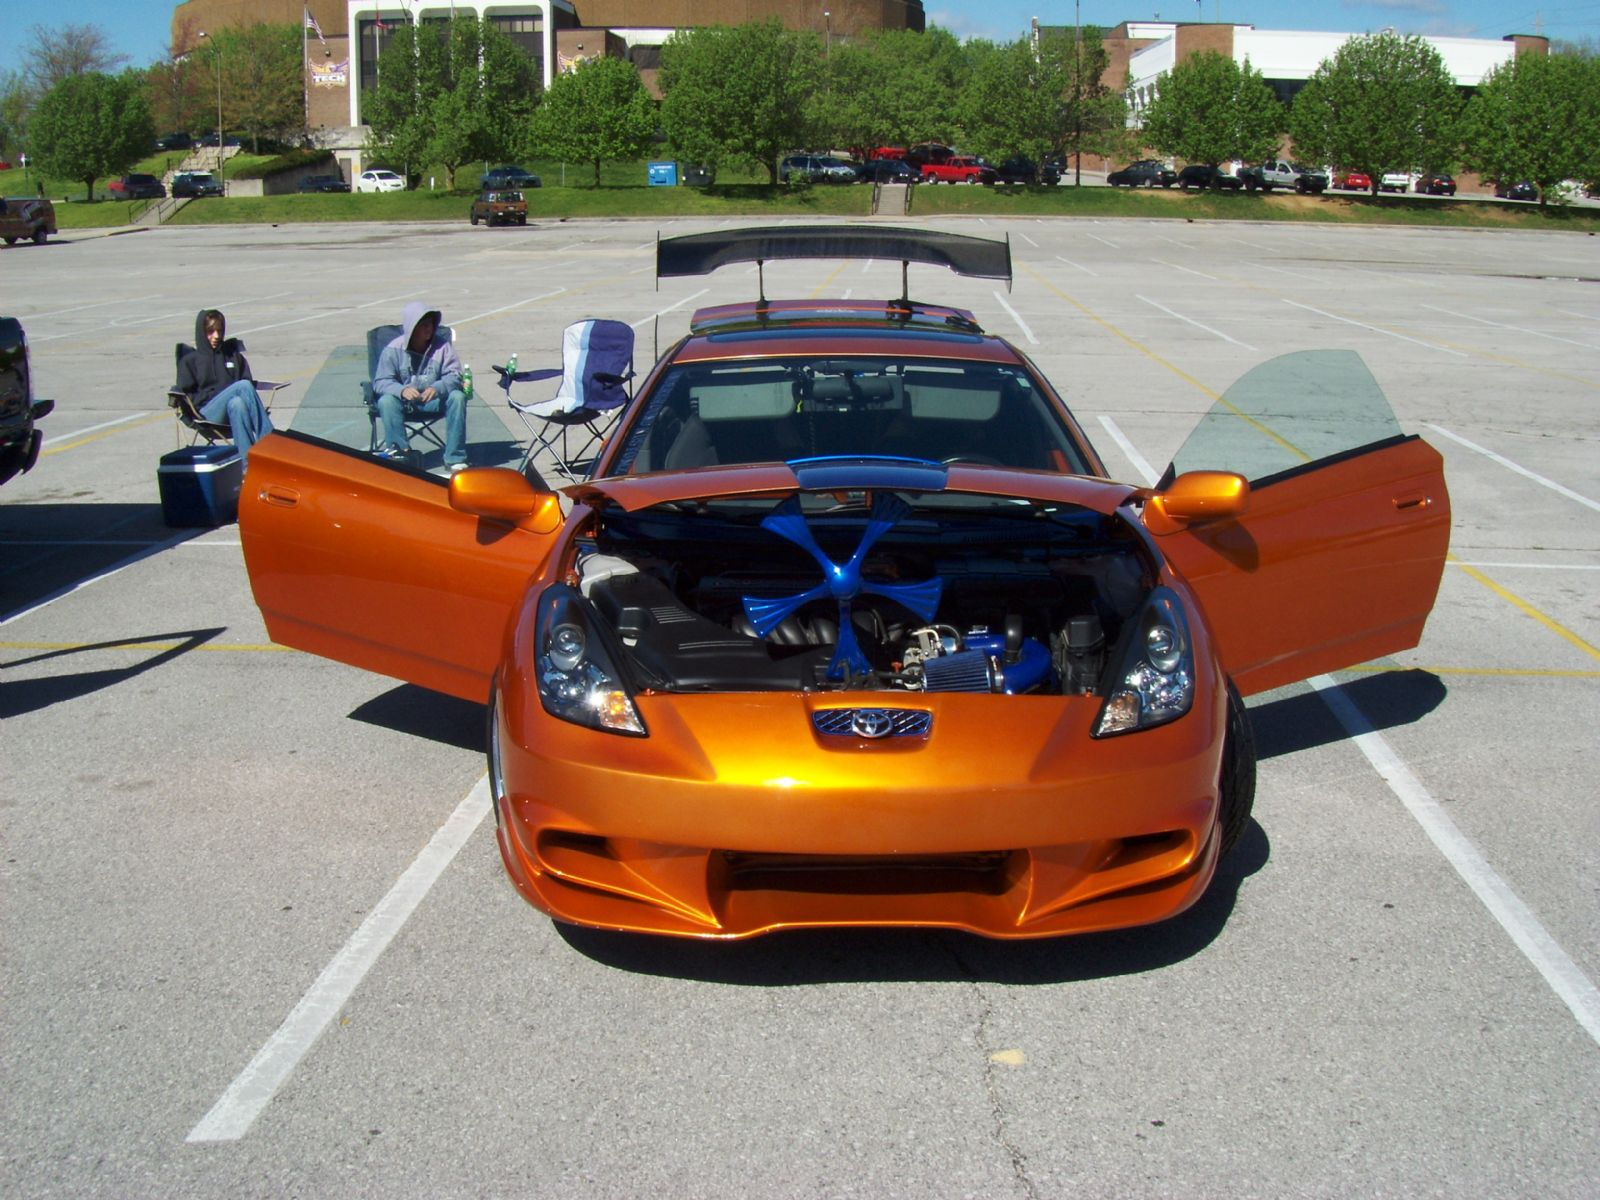 2000 Toyota Celica Gt Engine For Sale 2001 Toyota Celica GT For Sale | Cookeville Tennessee